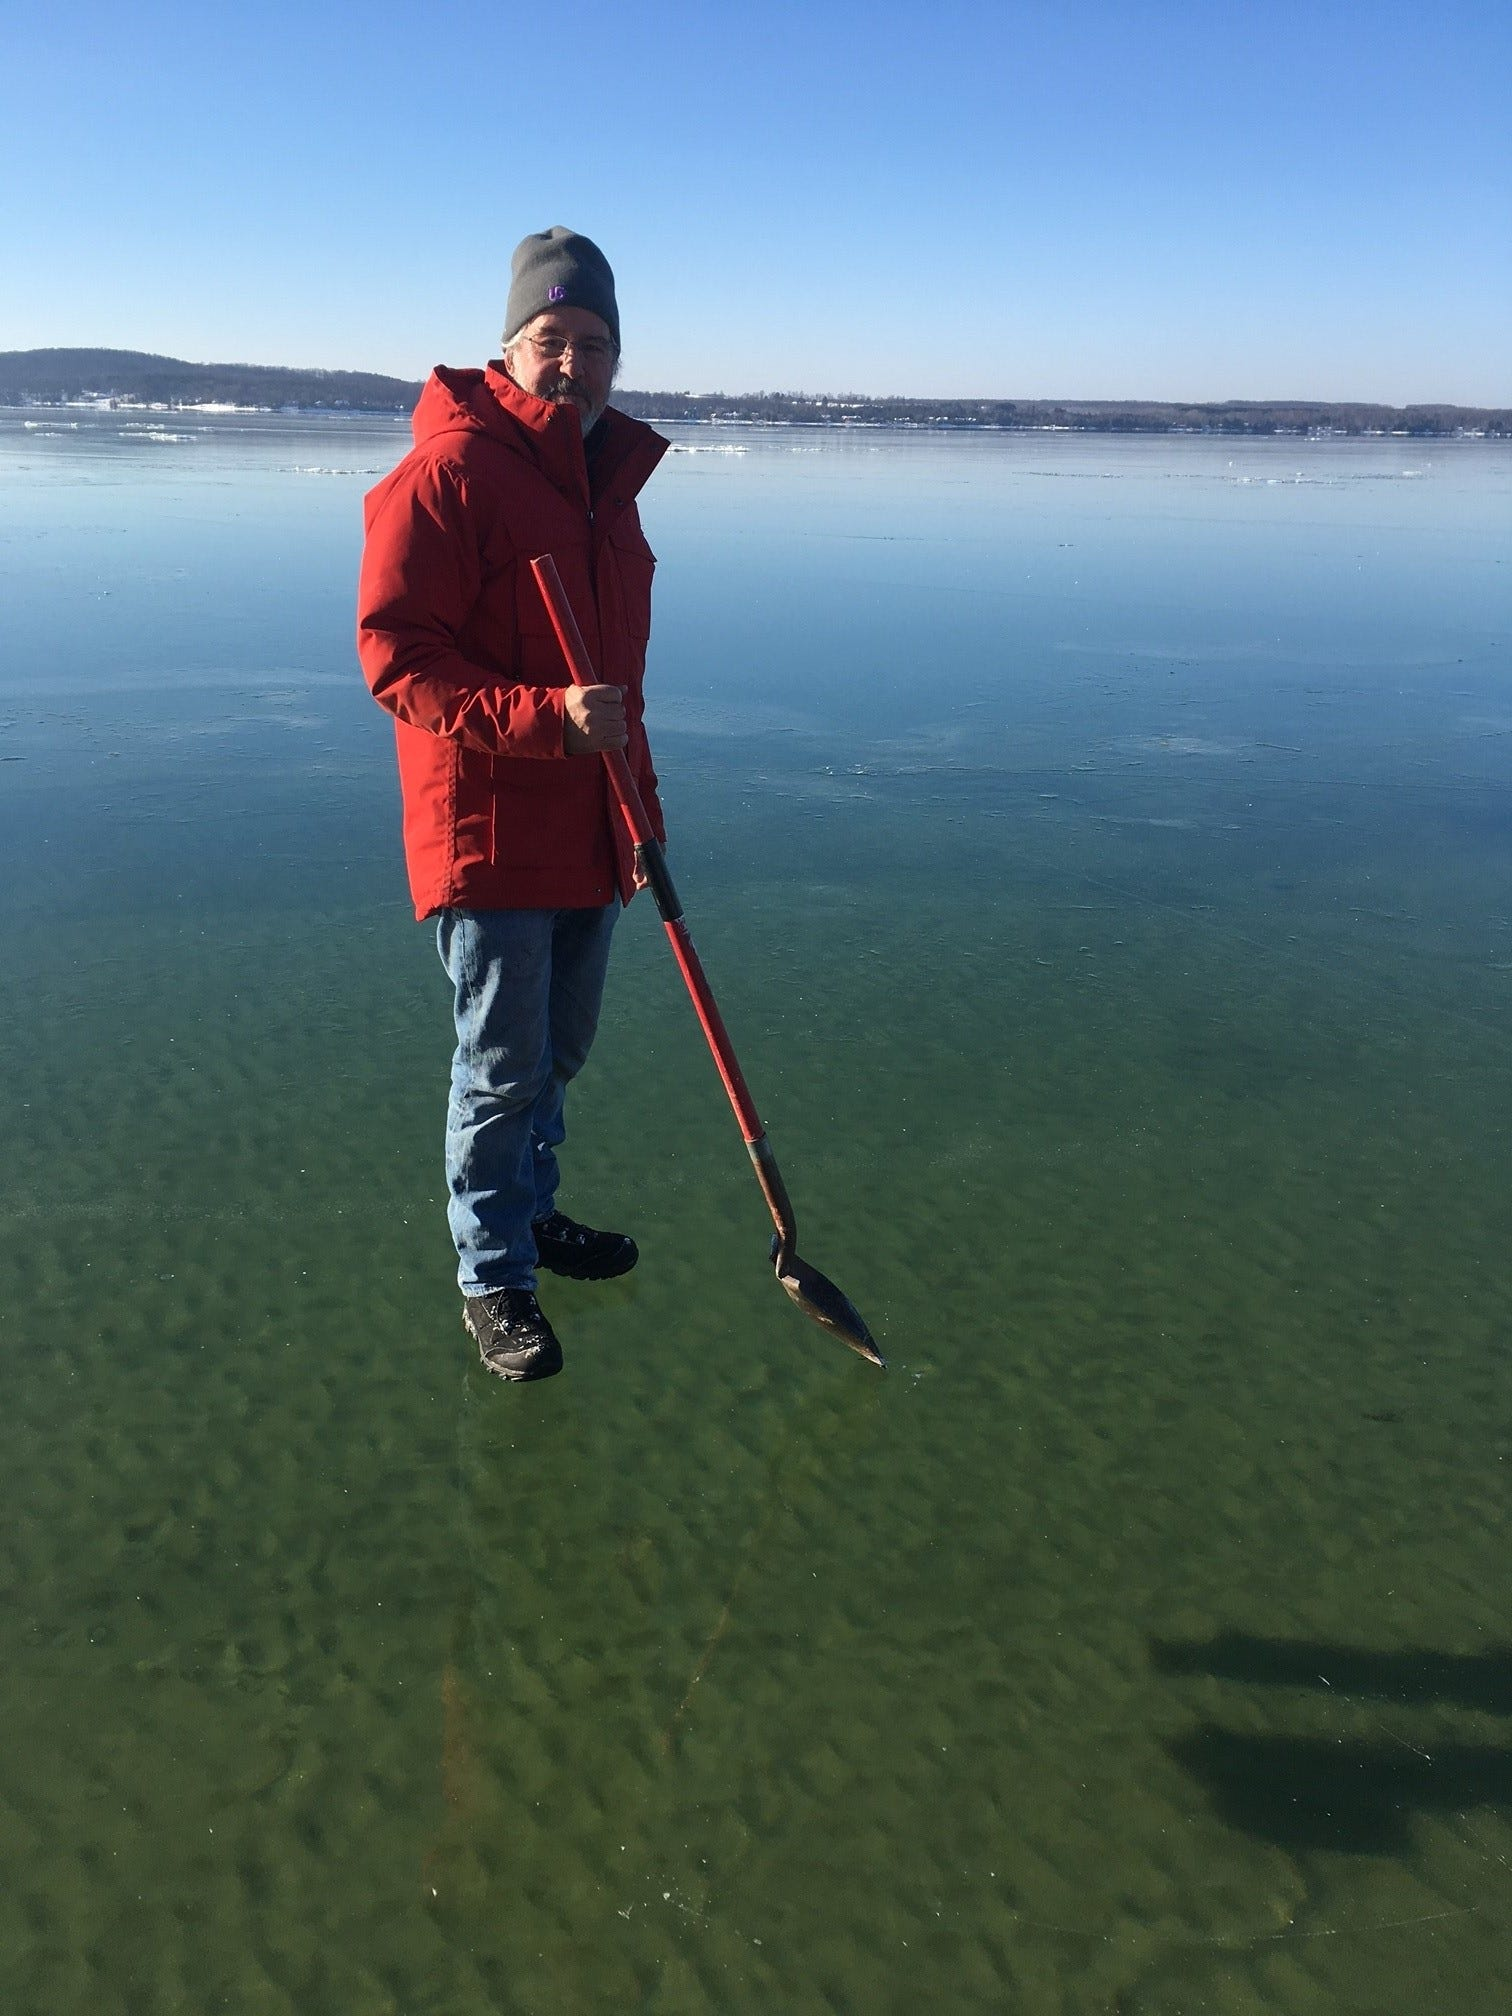 Incredibly clear lake ice makes for viral photo